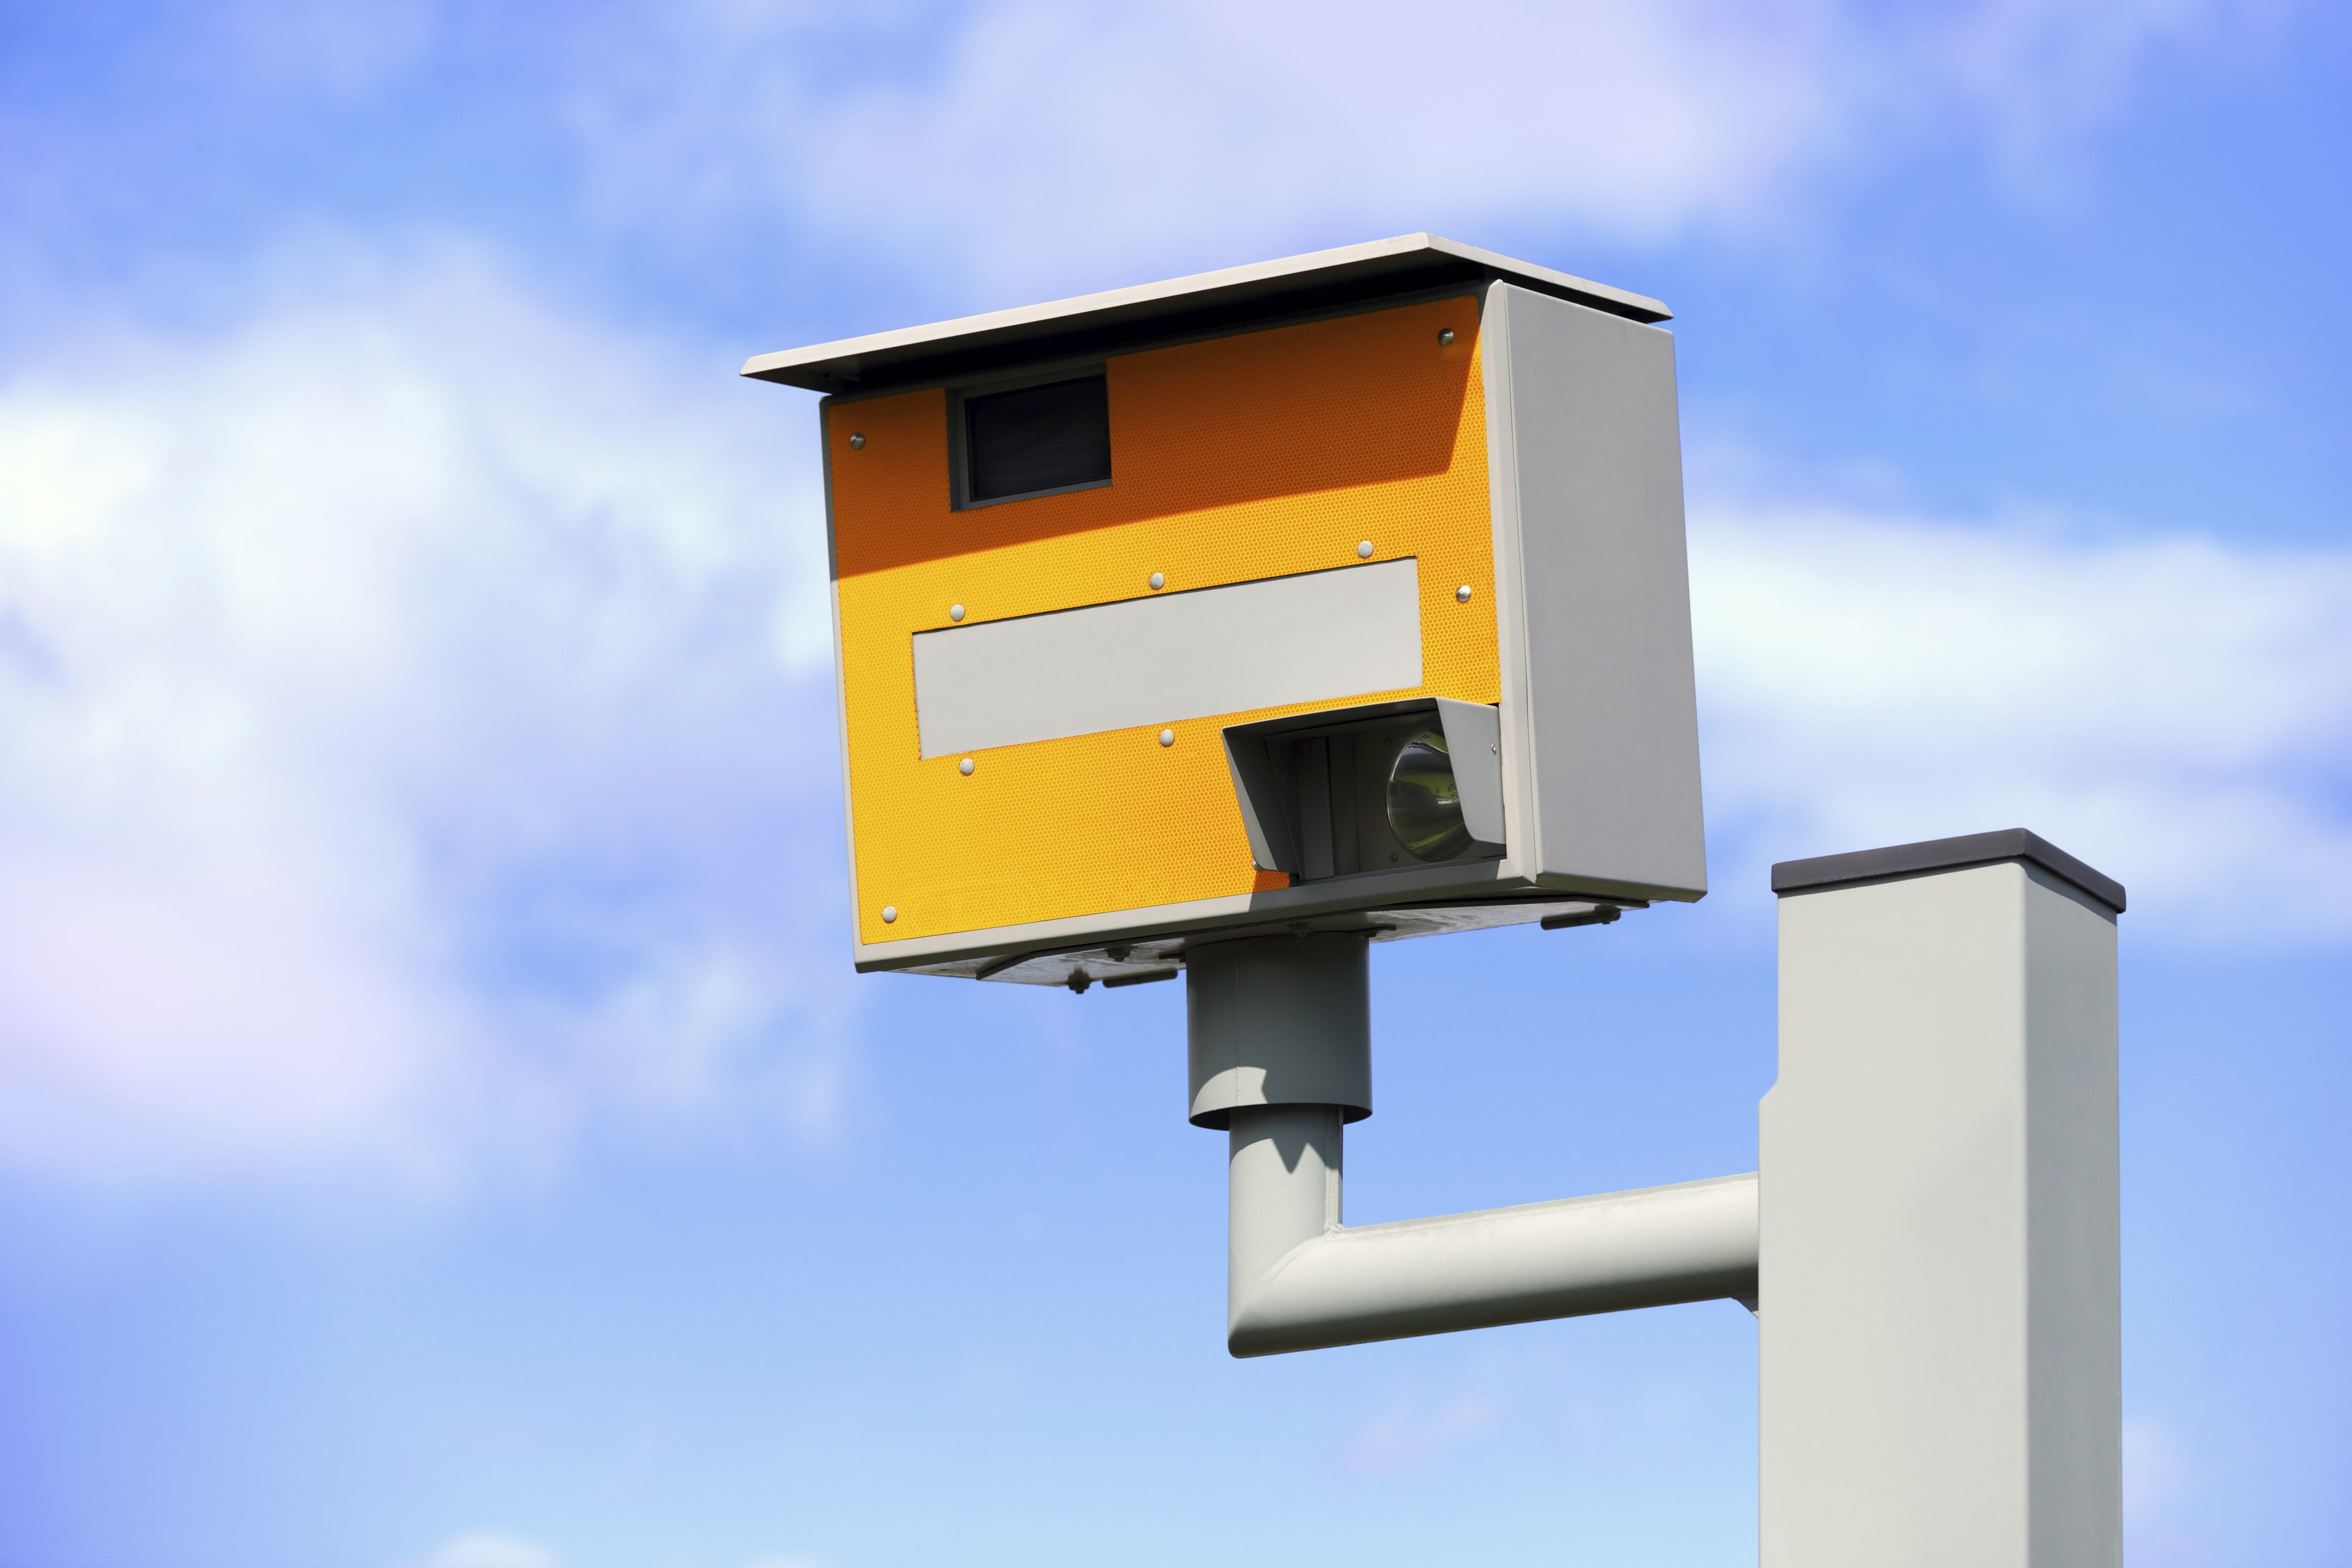 1st CENTRAL speed camera